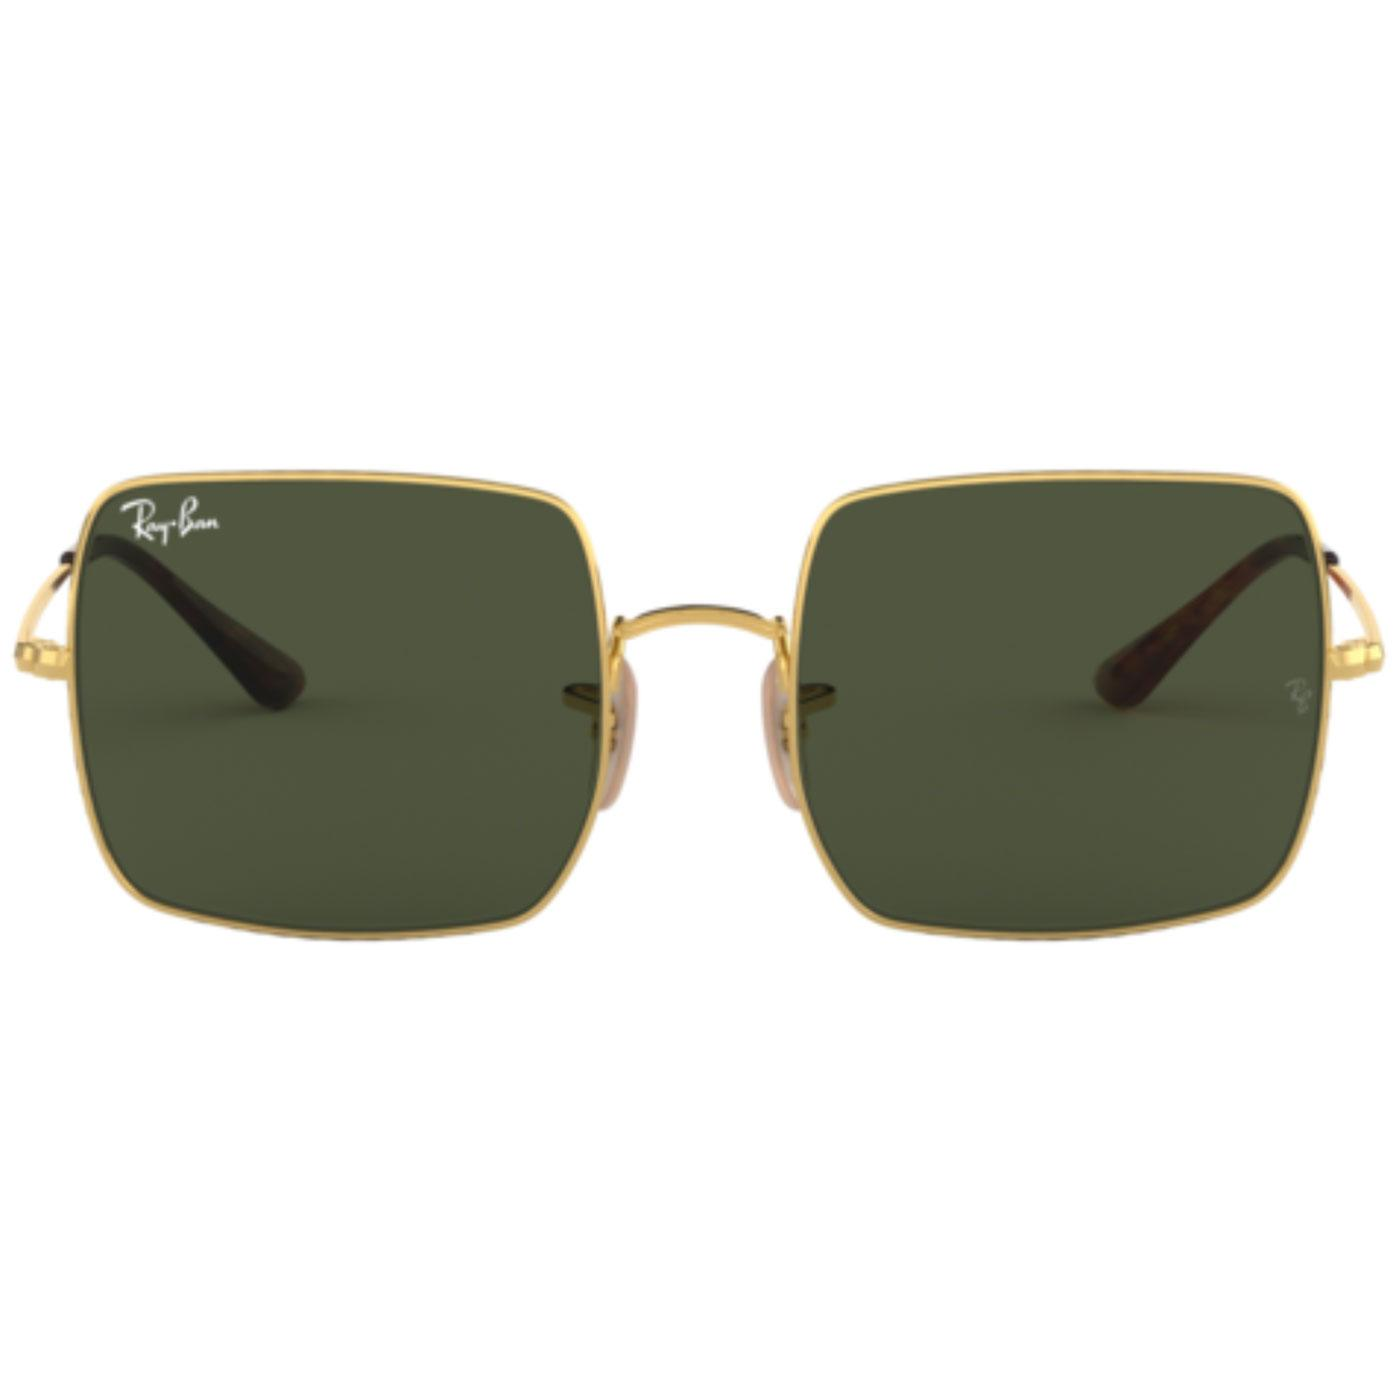 1971 Square RAY-BAN Retro 70s Square Sunglasses G